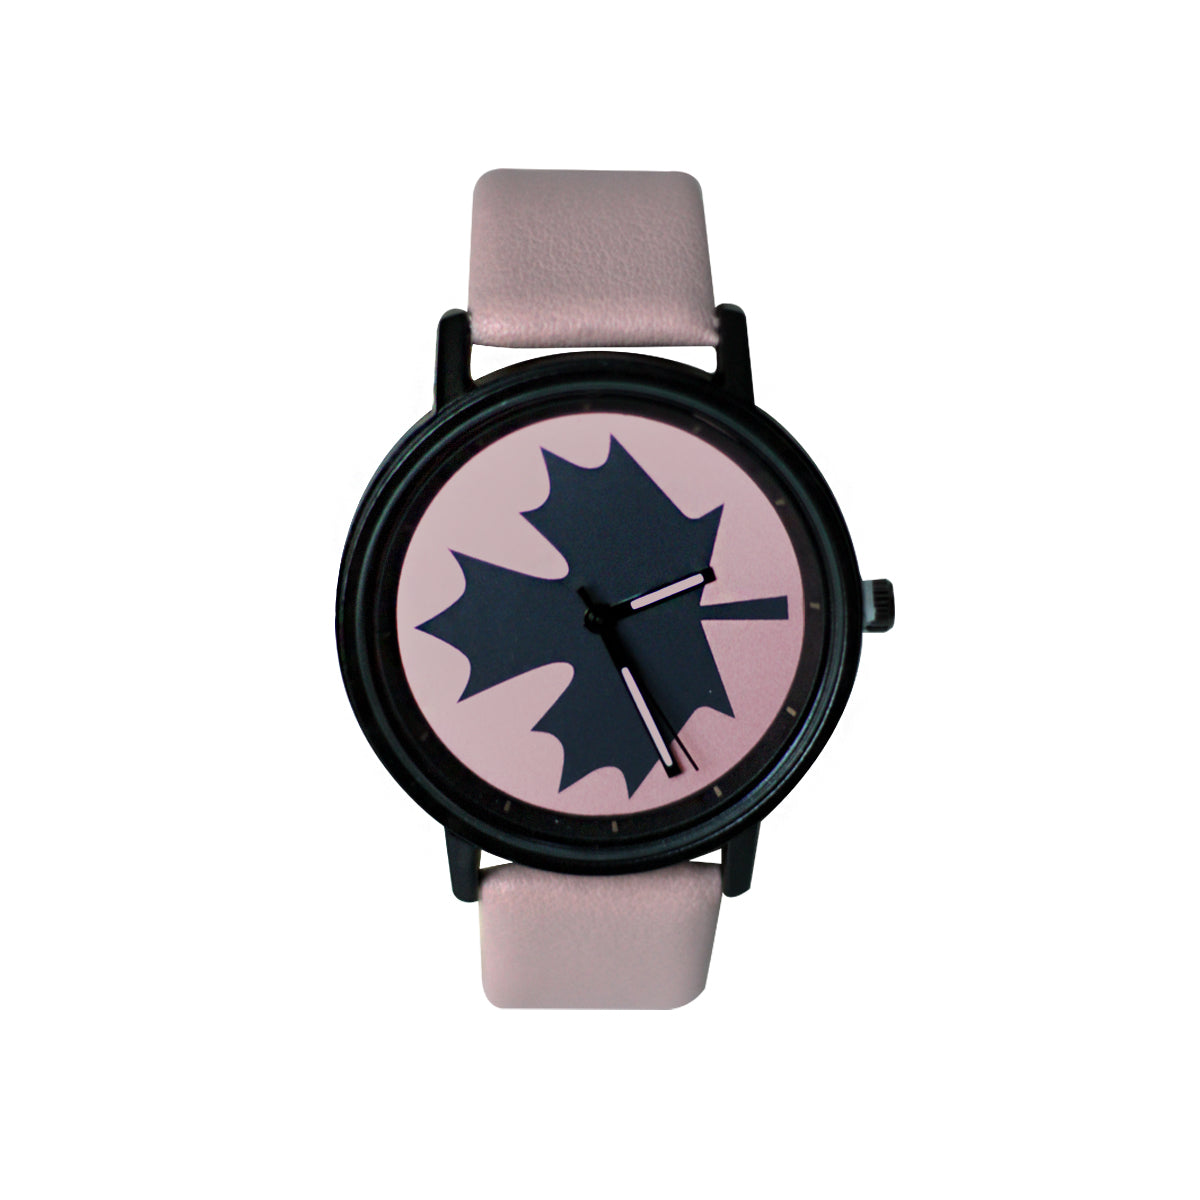 Licaihong Casual Analog Leather Watch For Women - Pink